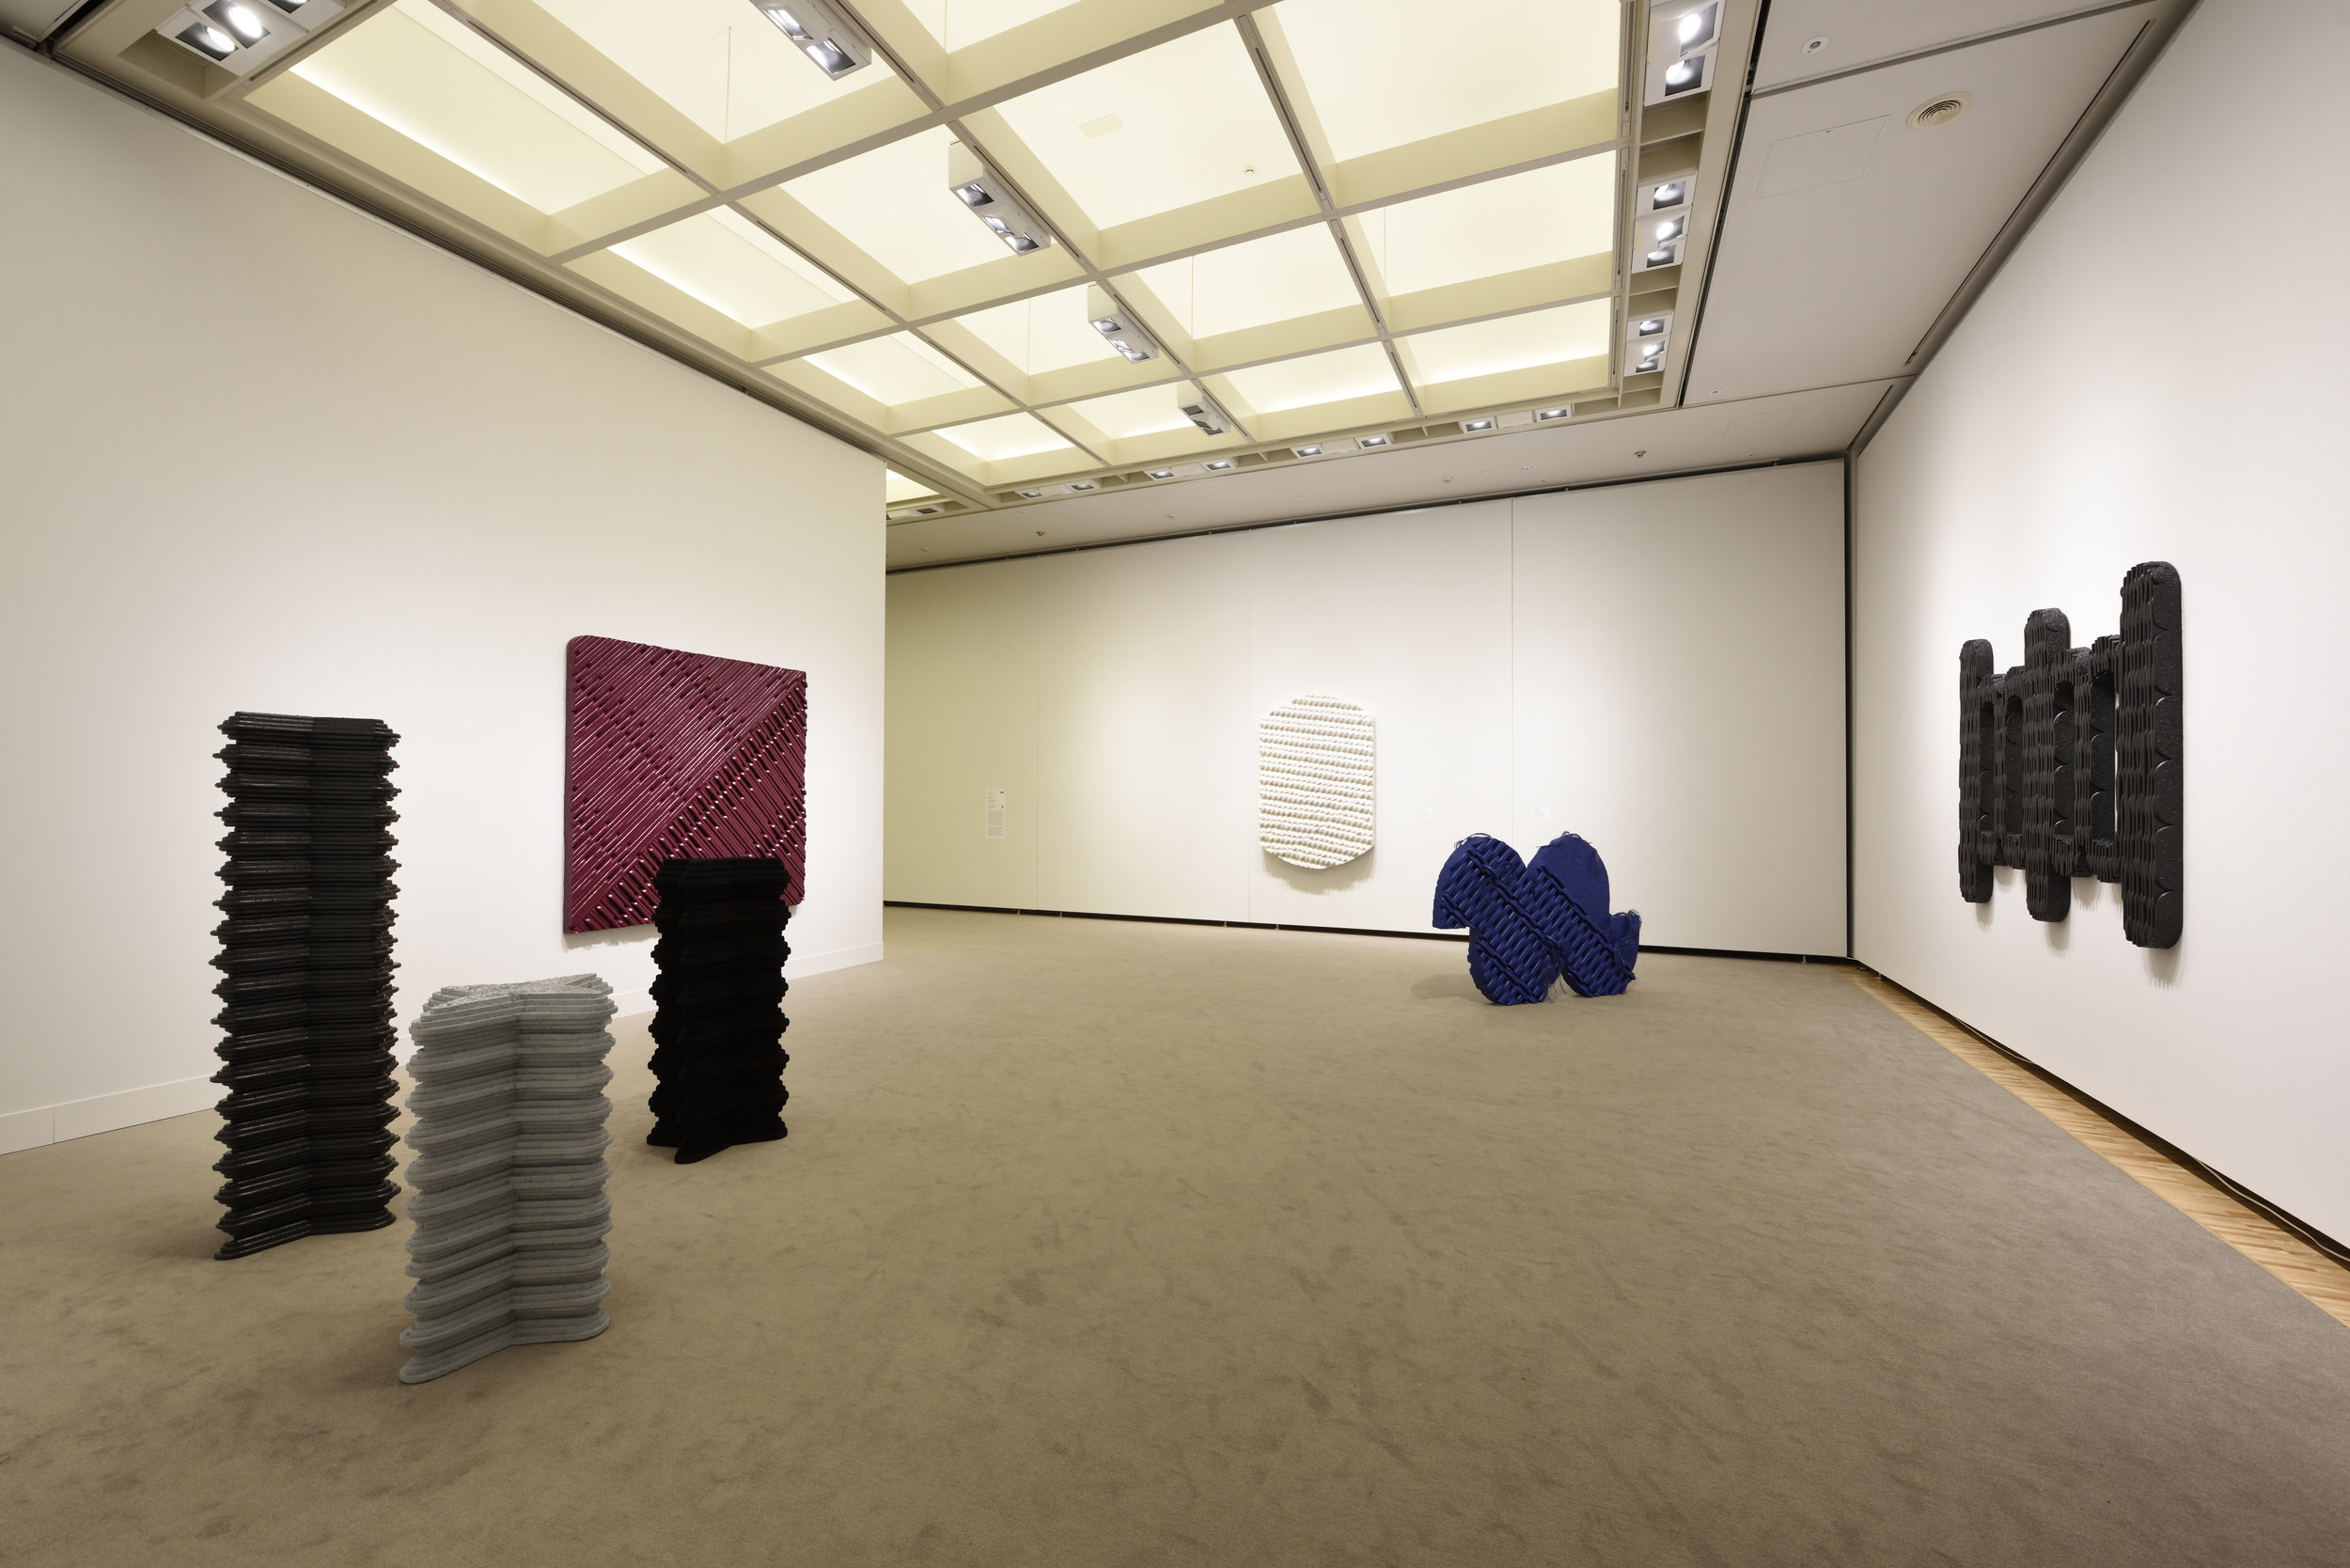 Aichi Prefectural Museum of Art. Nagoya, Japan. Installation view.  Photographer: Tetsuo Ito